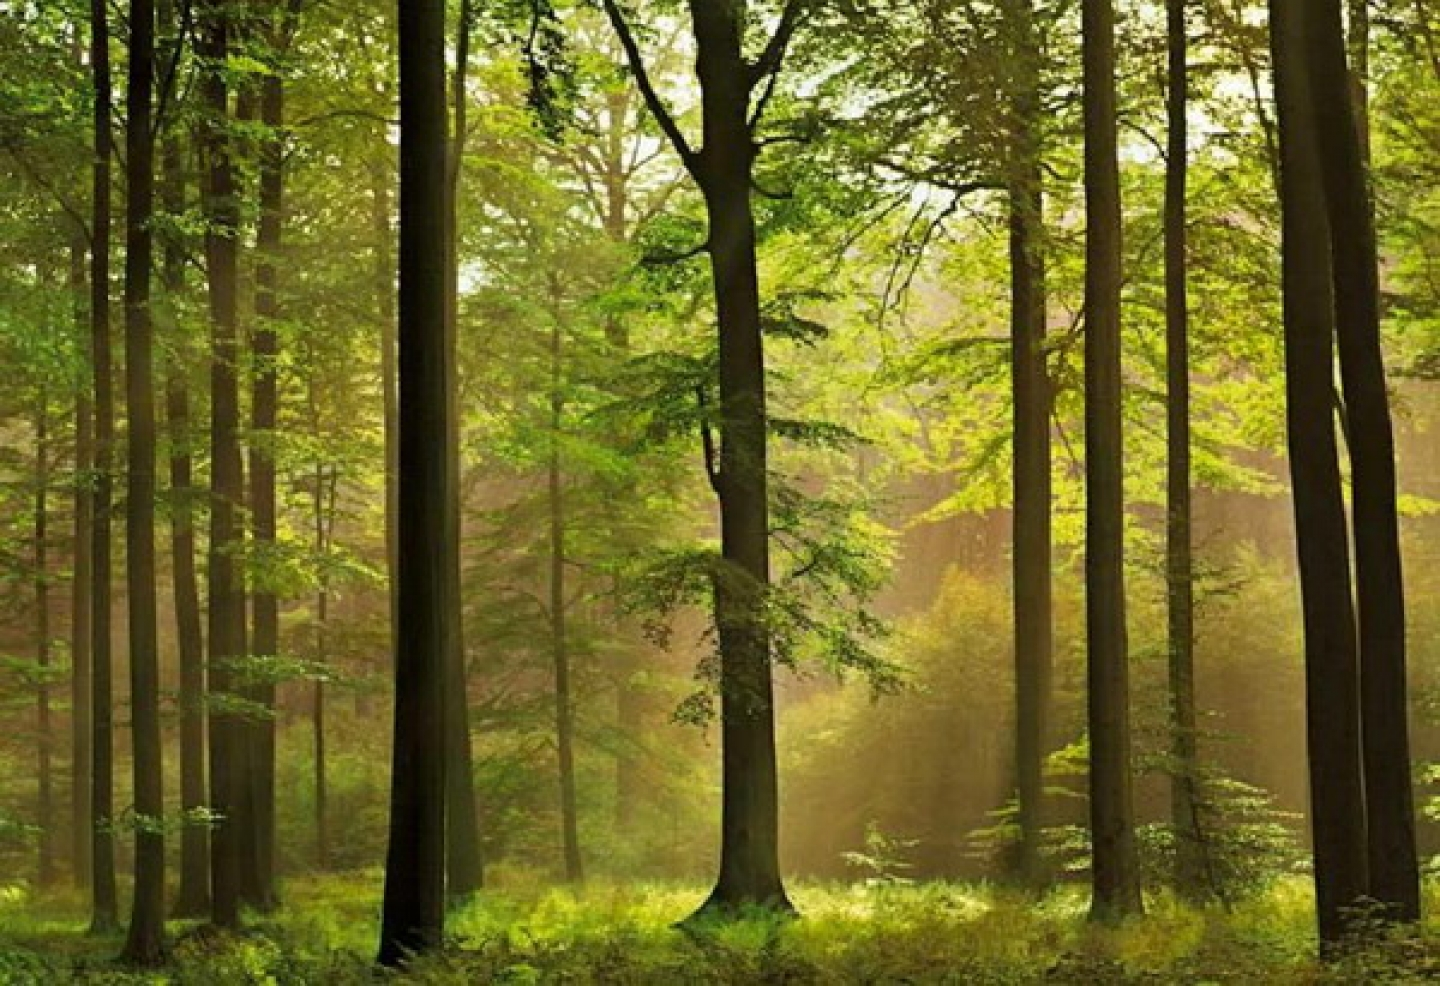 16921 wallpaper mural in forest theme traditional wallpaper versus 1440x986